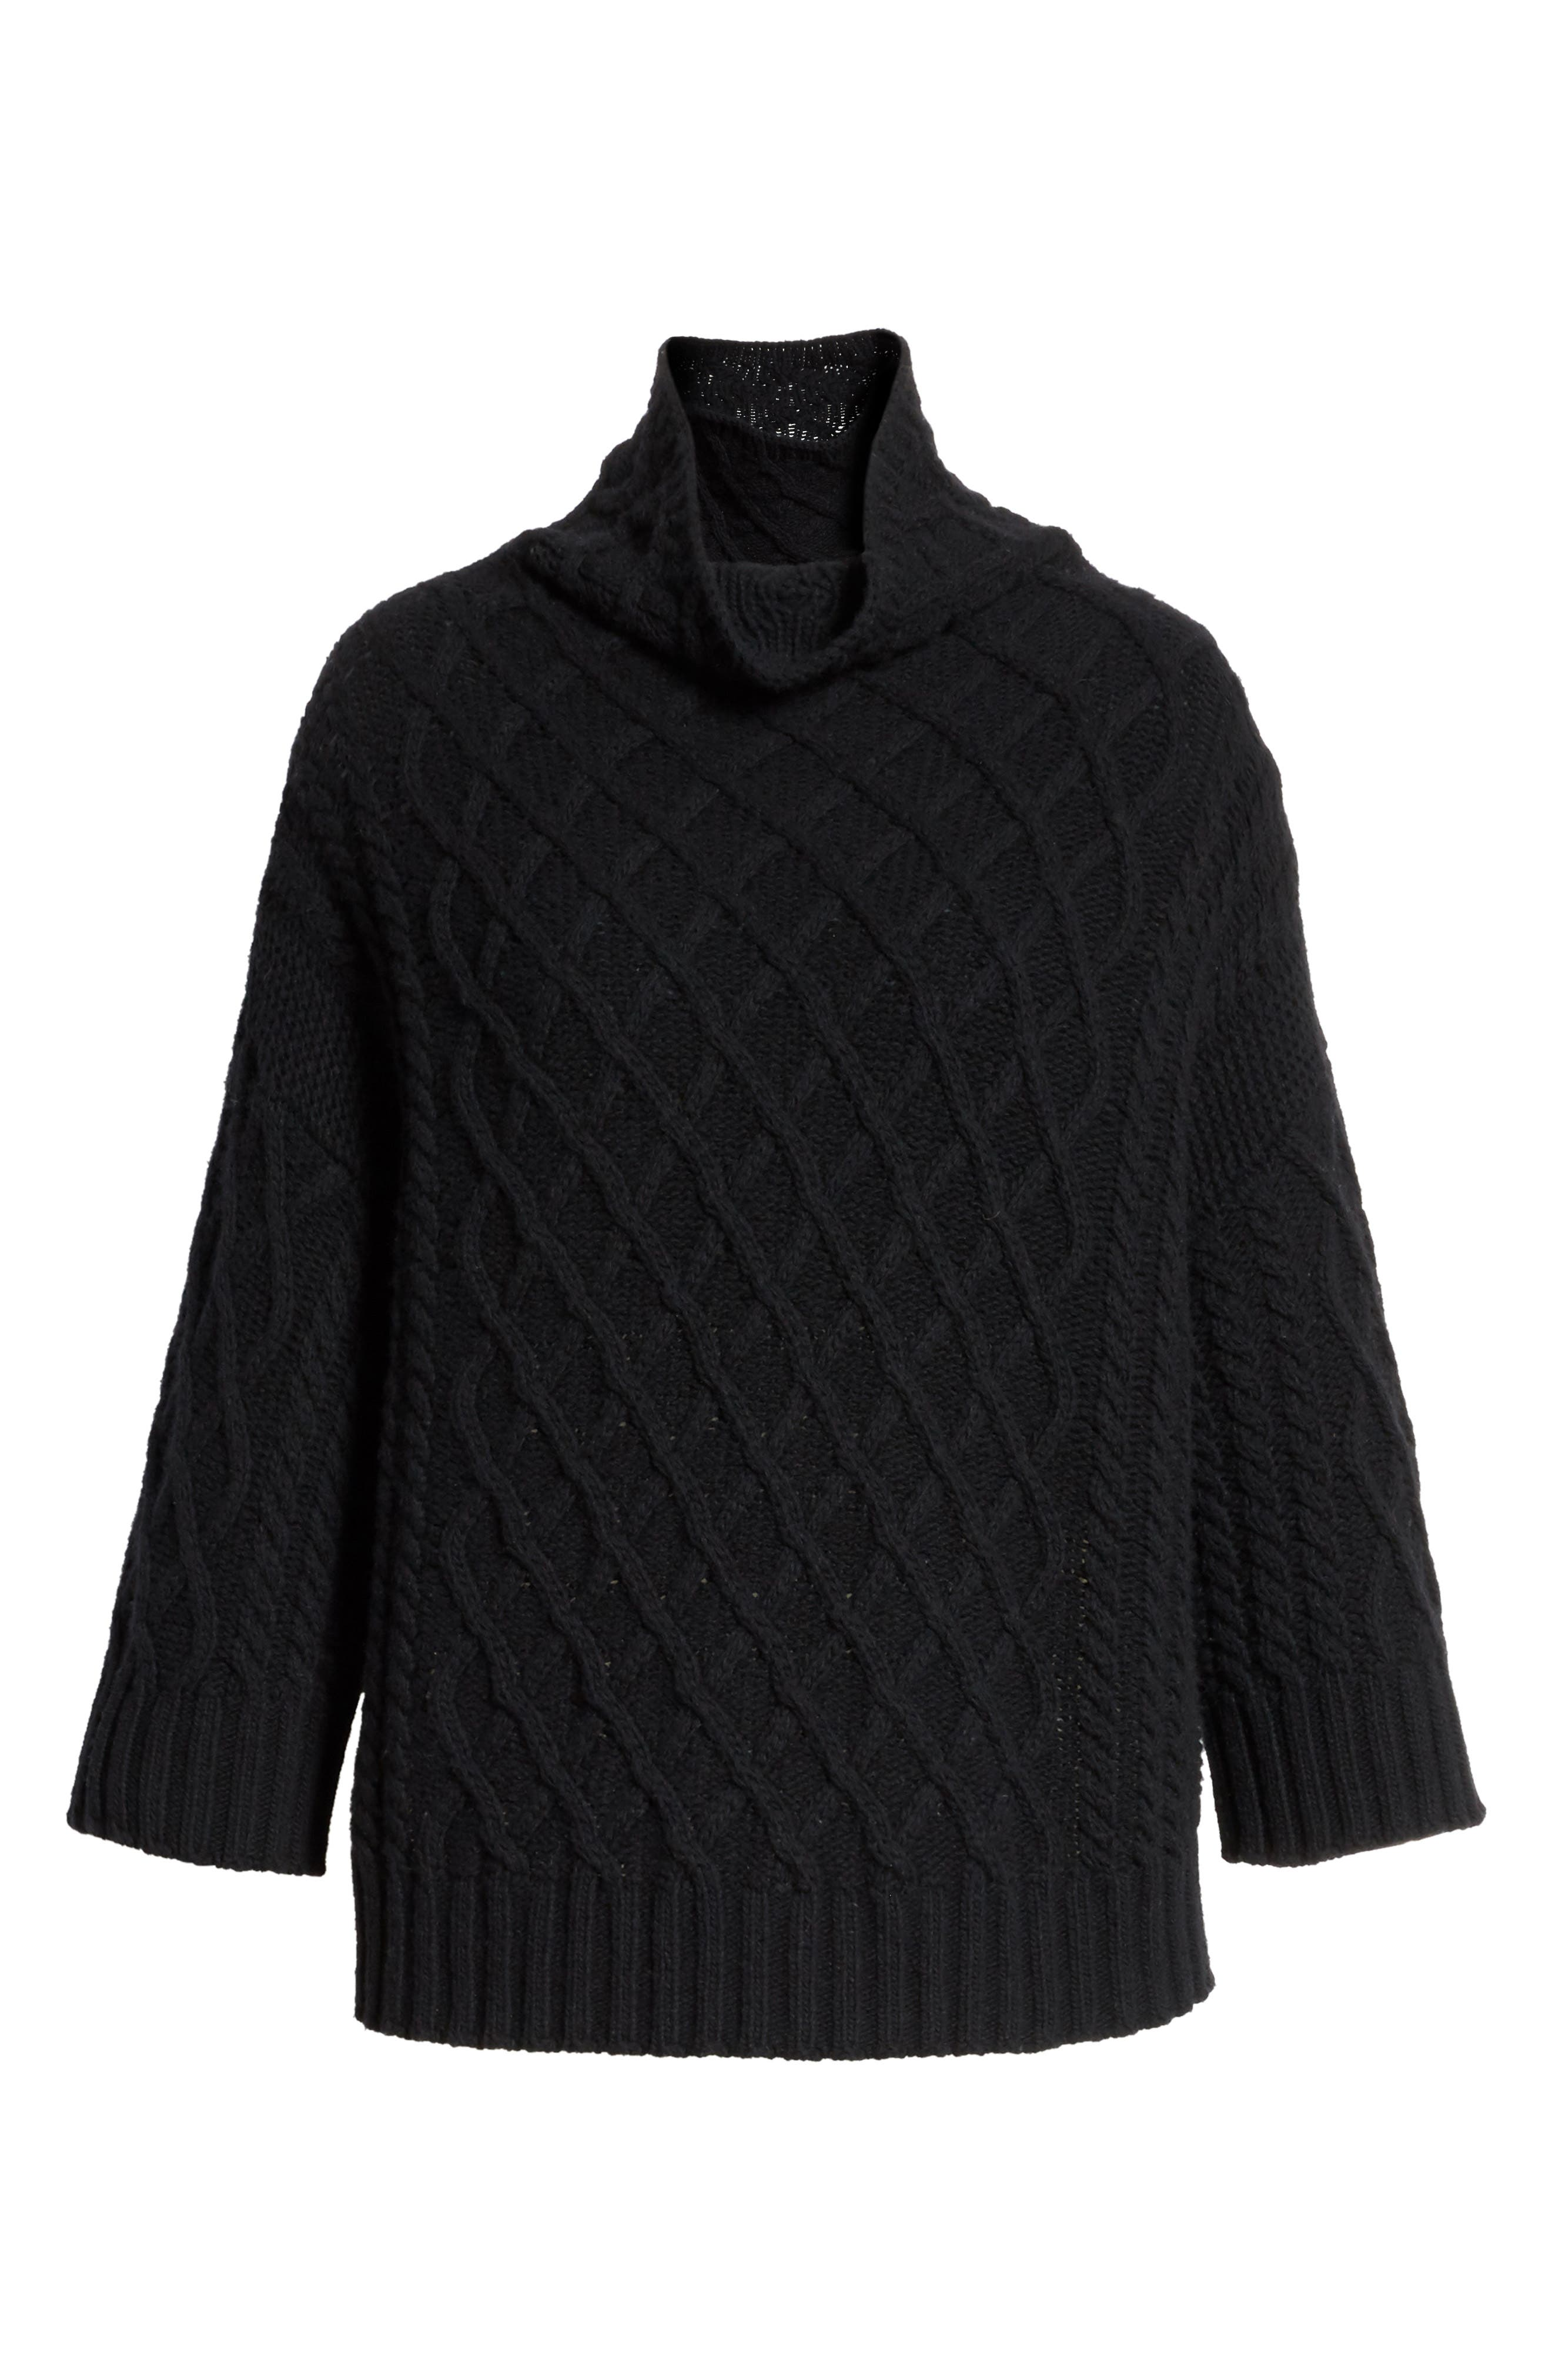 Cantone Wool & Cashmere Funnel Neck Sweater,                             Alternate thumbnail 6, color,